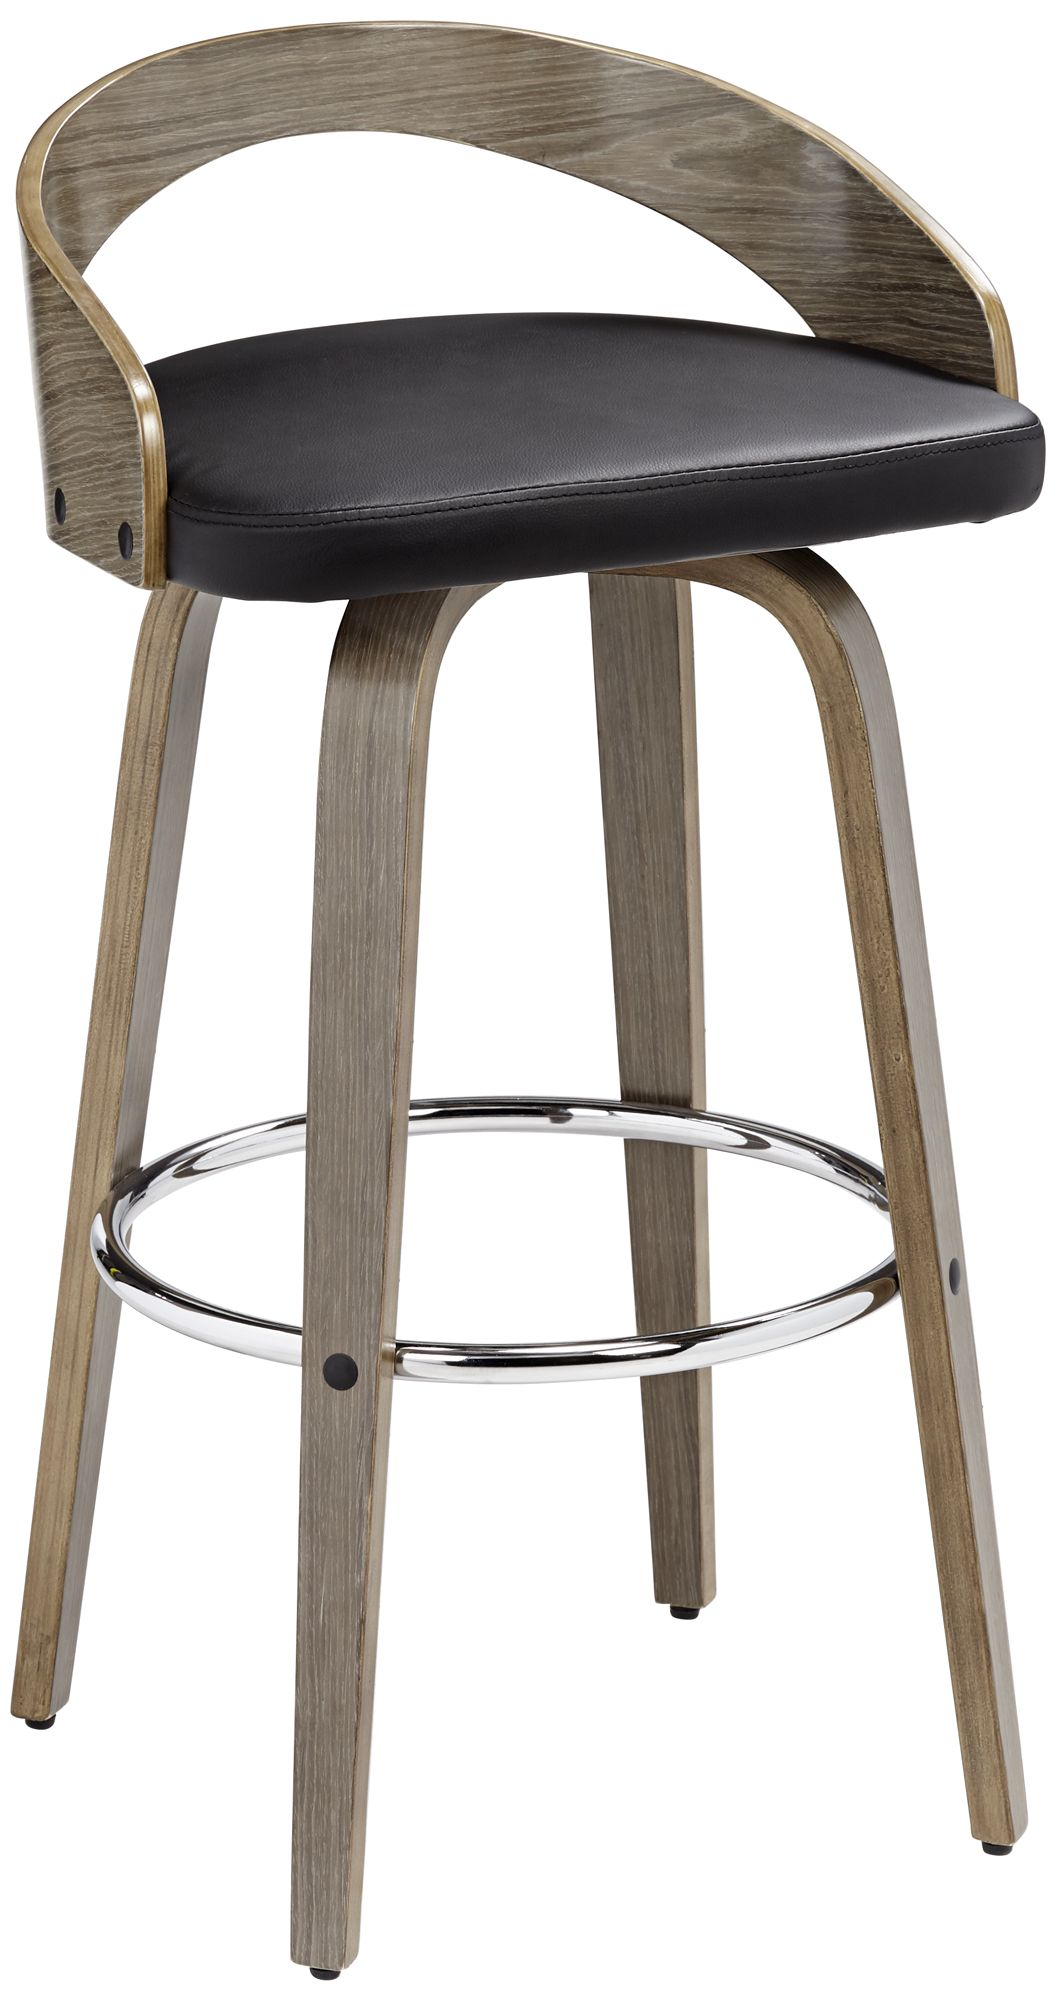 Gratto 29 1/4  Black Faux Leather Gray Wood Swivel Bar Stool  sc 1 st  L&s Plus & Footrest Barstools Seating | Lamps Plus islam-shia.org